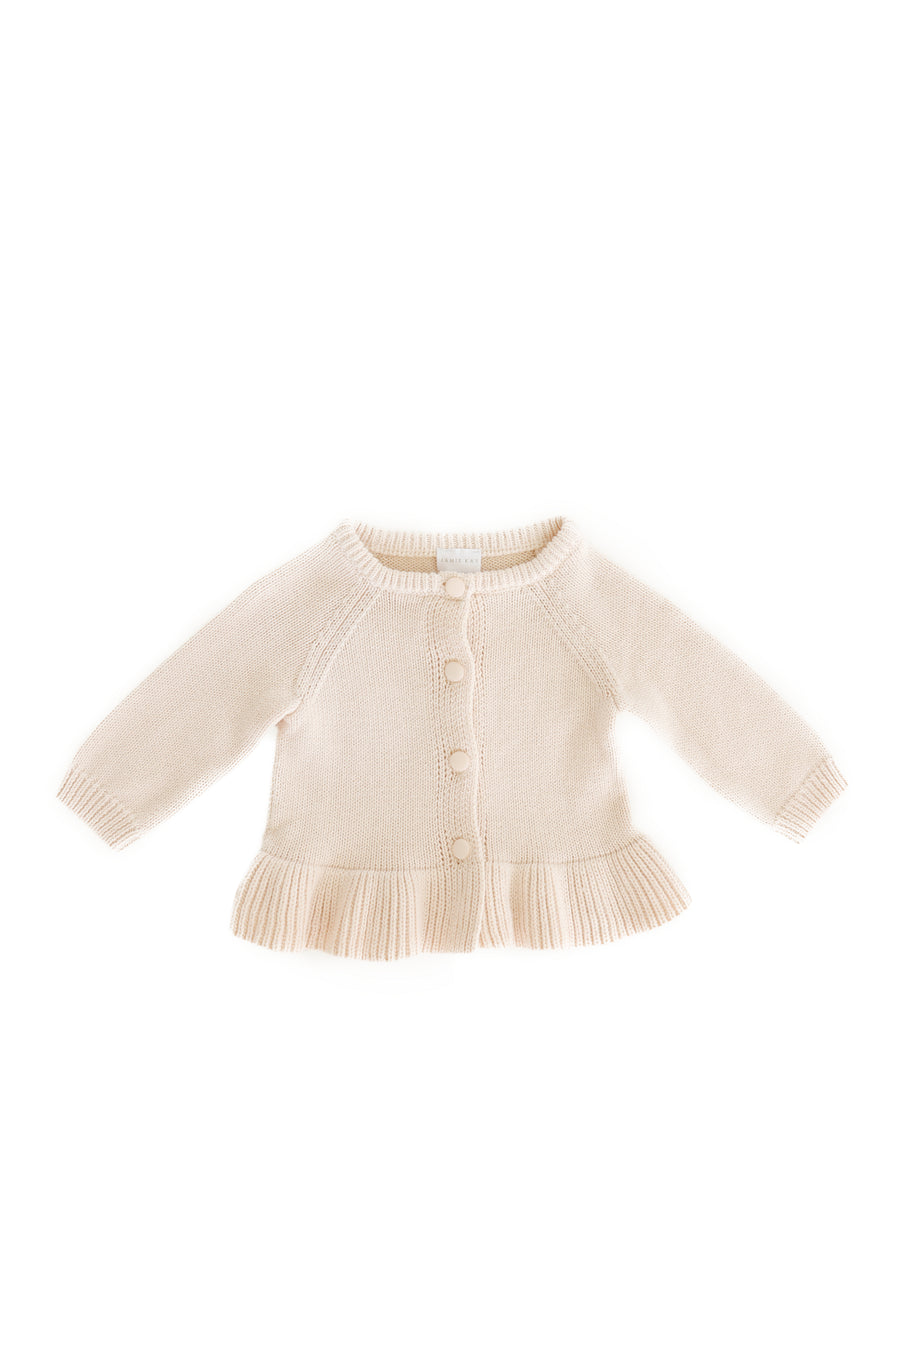 Addison Cardigan | Frosted Rose